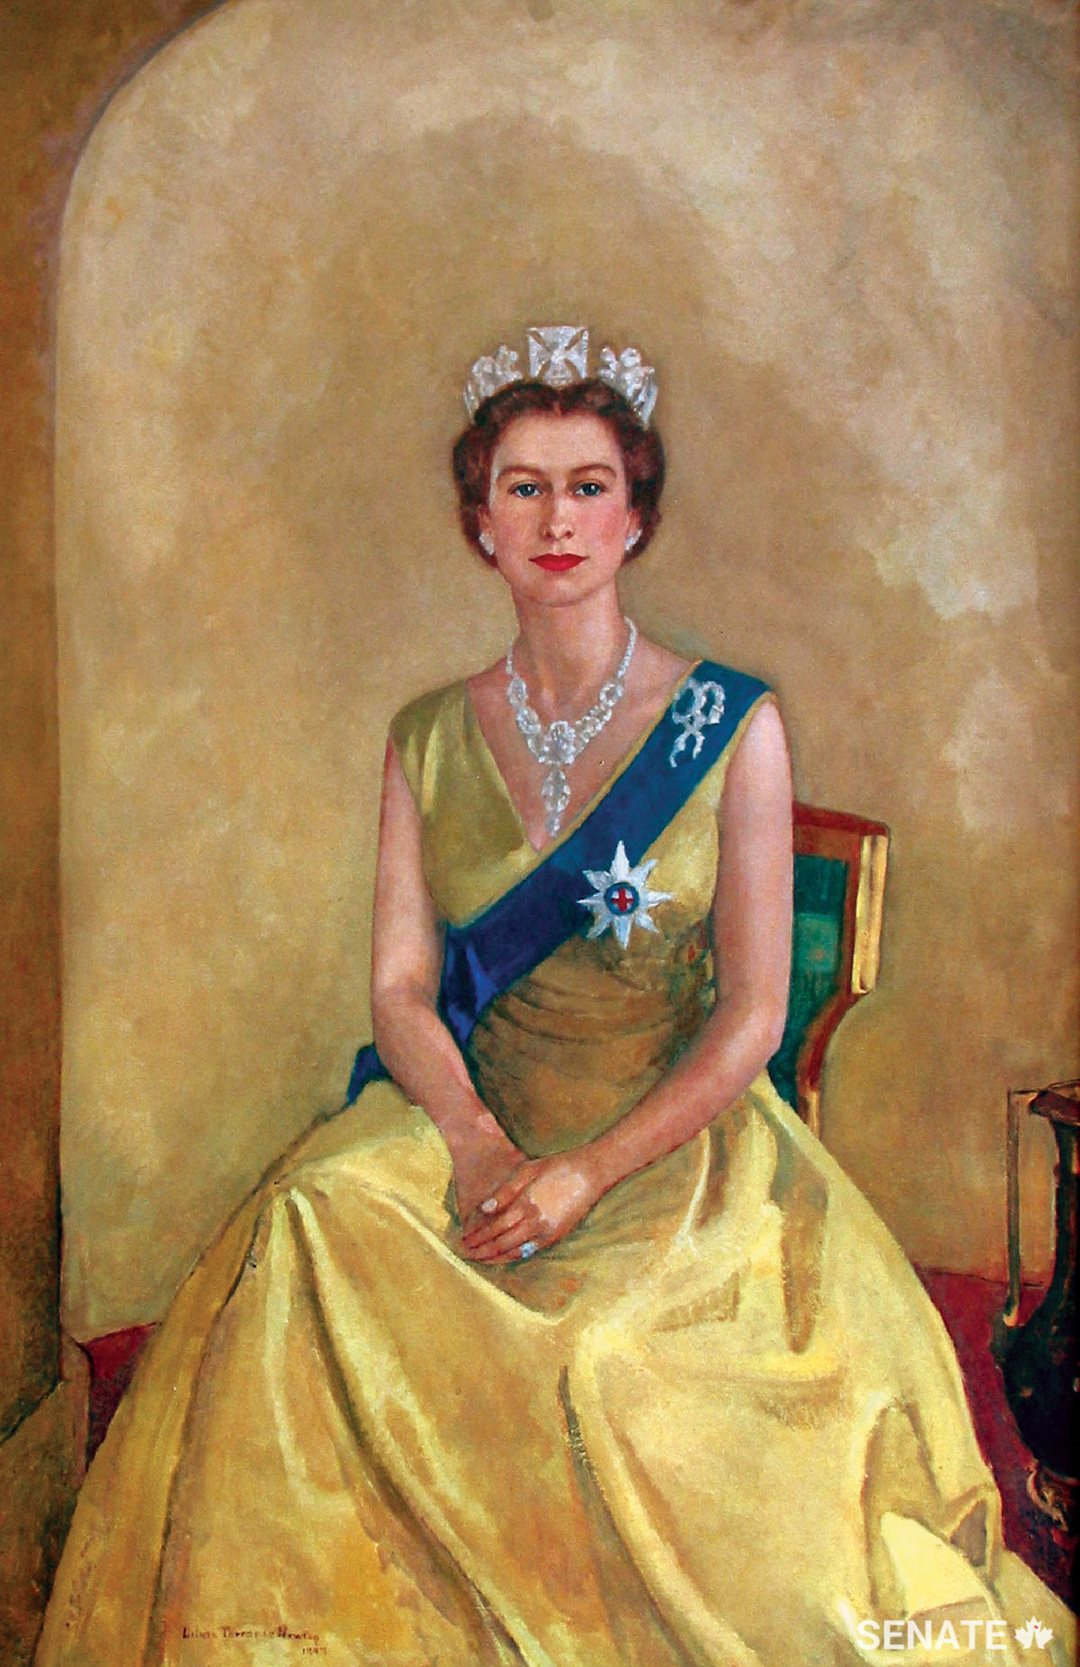 This 1957 portrait by Lilias Torrance Newton of the 31-year-old Queen Elizabeth II, painted five years after the beginning of her reign, is one of two original paintings in the foyer and the only one by a Canadian artist.